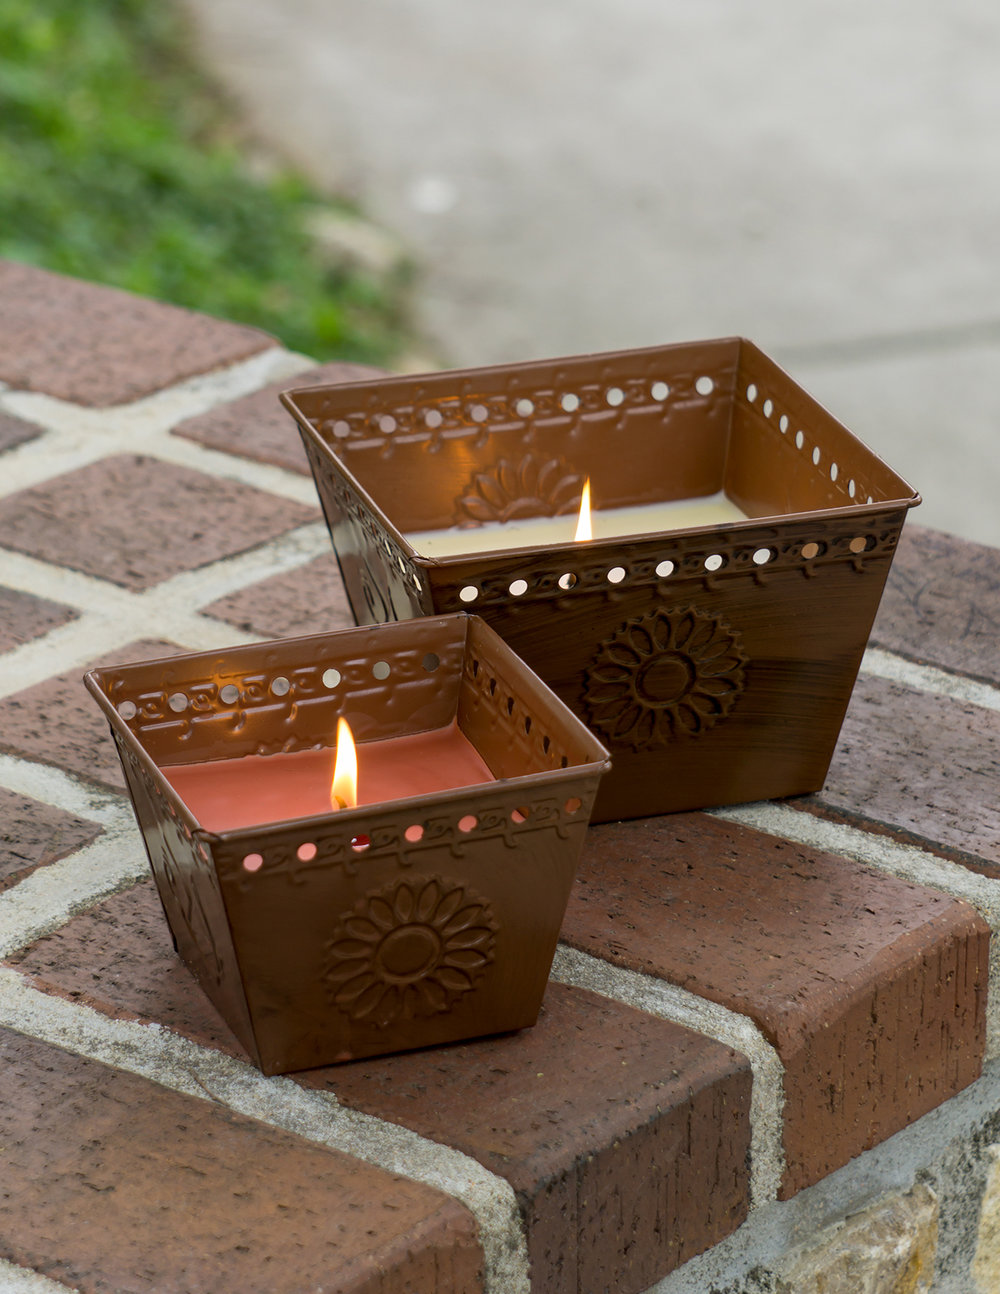 2018 Tuscany CandleOutdoor & Citronella - Deadline for orders/commitments is Sept. 26, 2017First available ship date is Feb. 10, 2018.